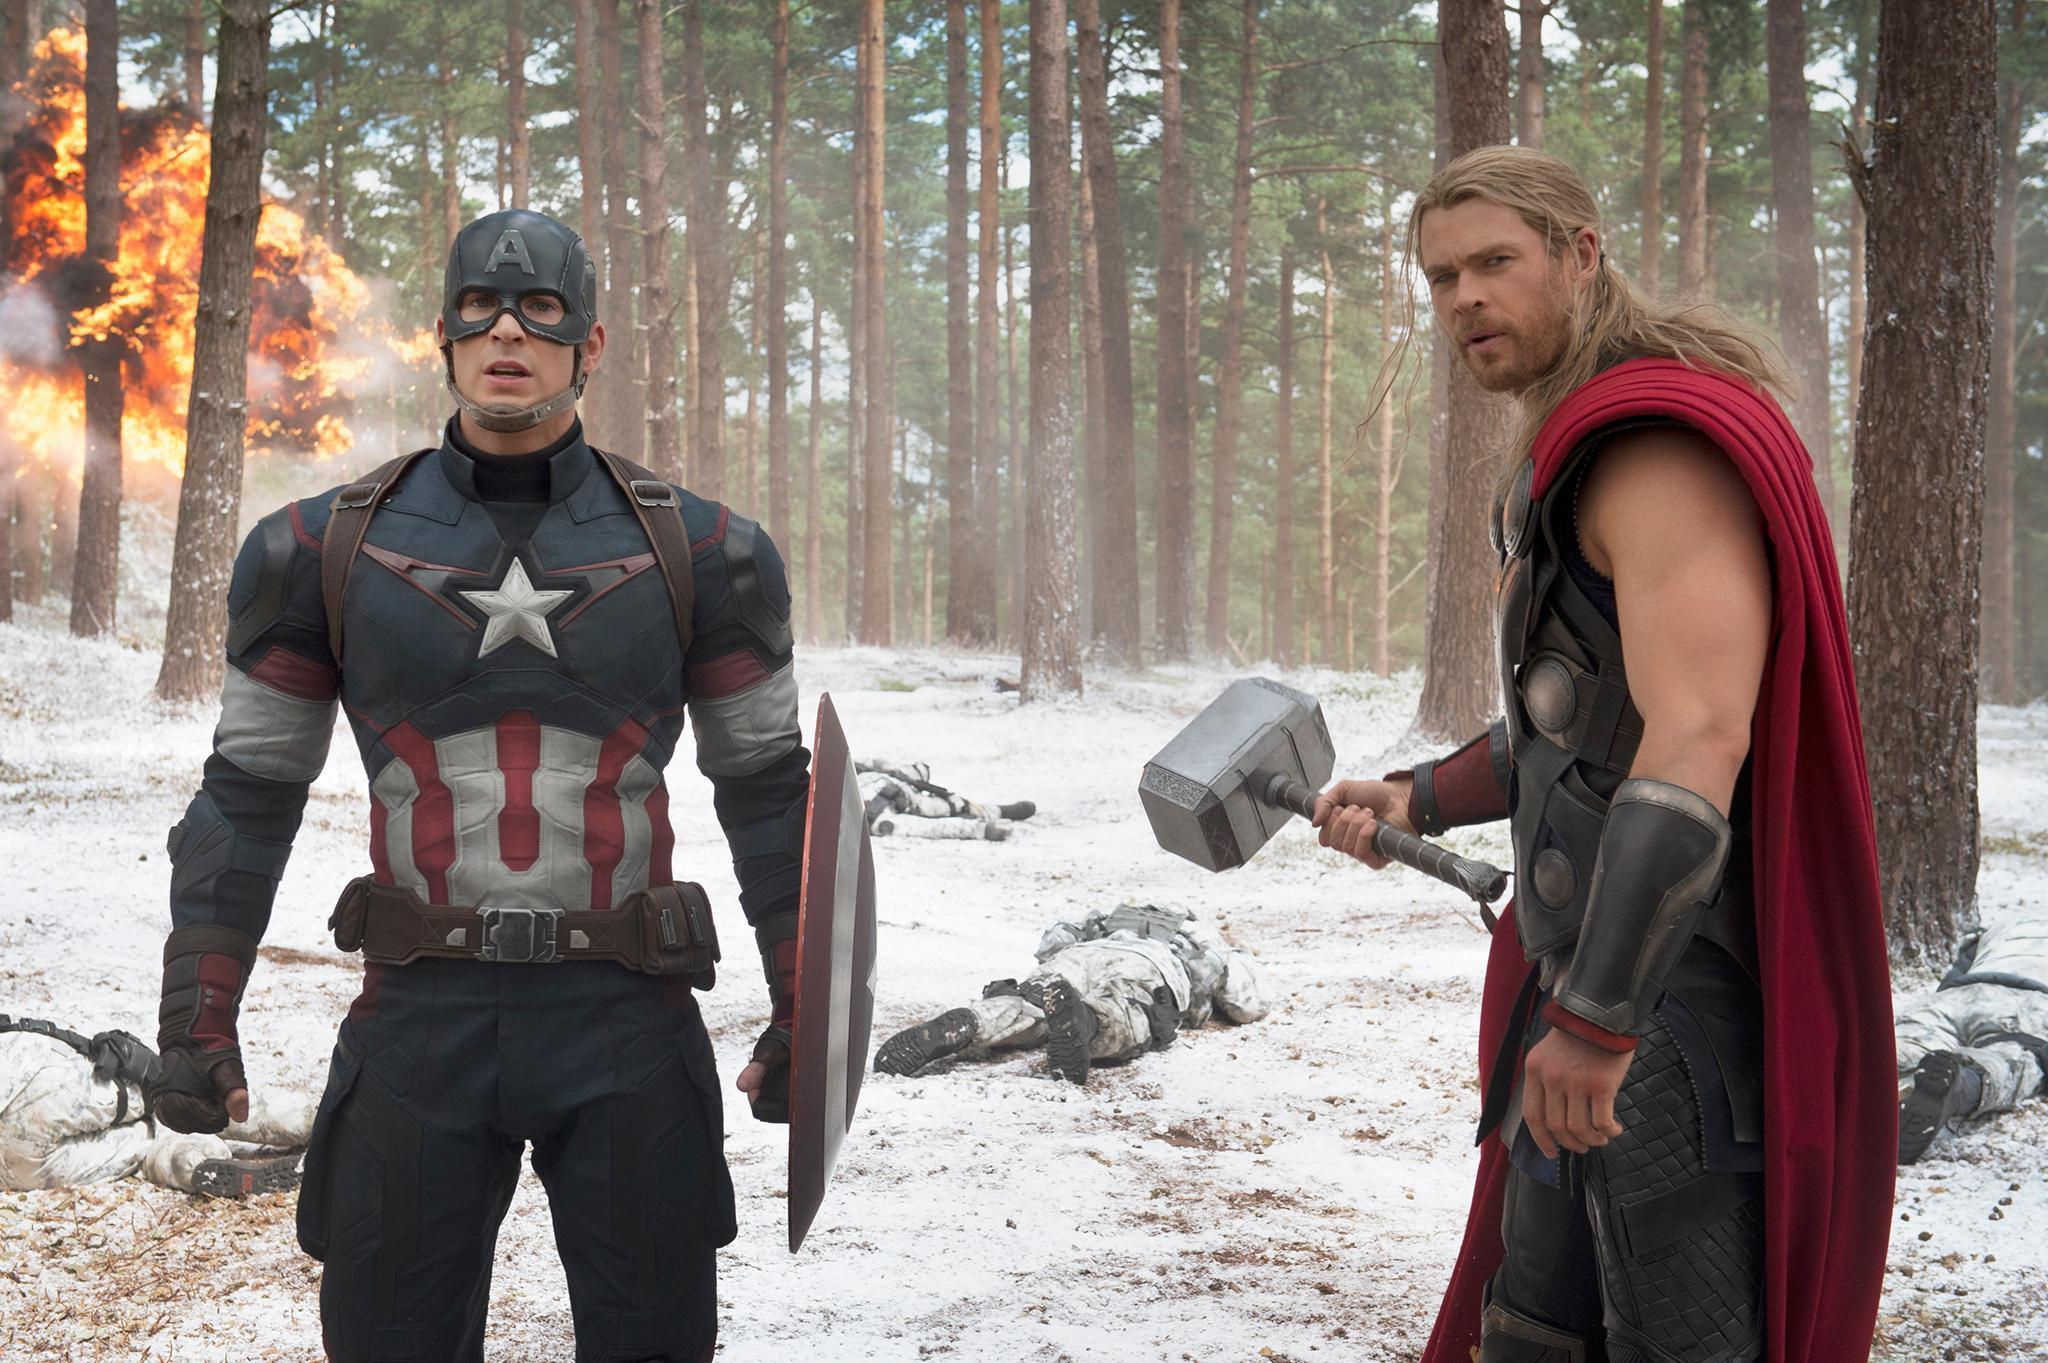 """Joss Whedon: 'Avengers' Sequel Was a """"Nightmare"""" Due to Expanded Superhero Cast"""